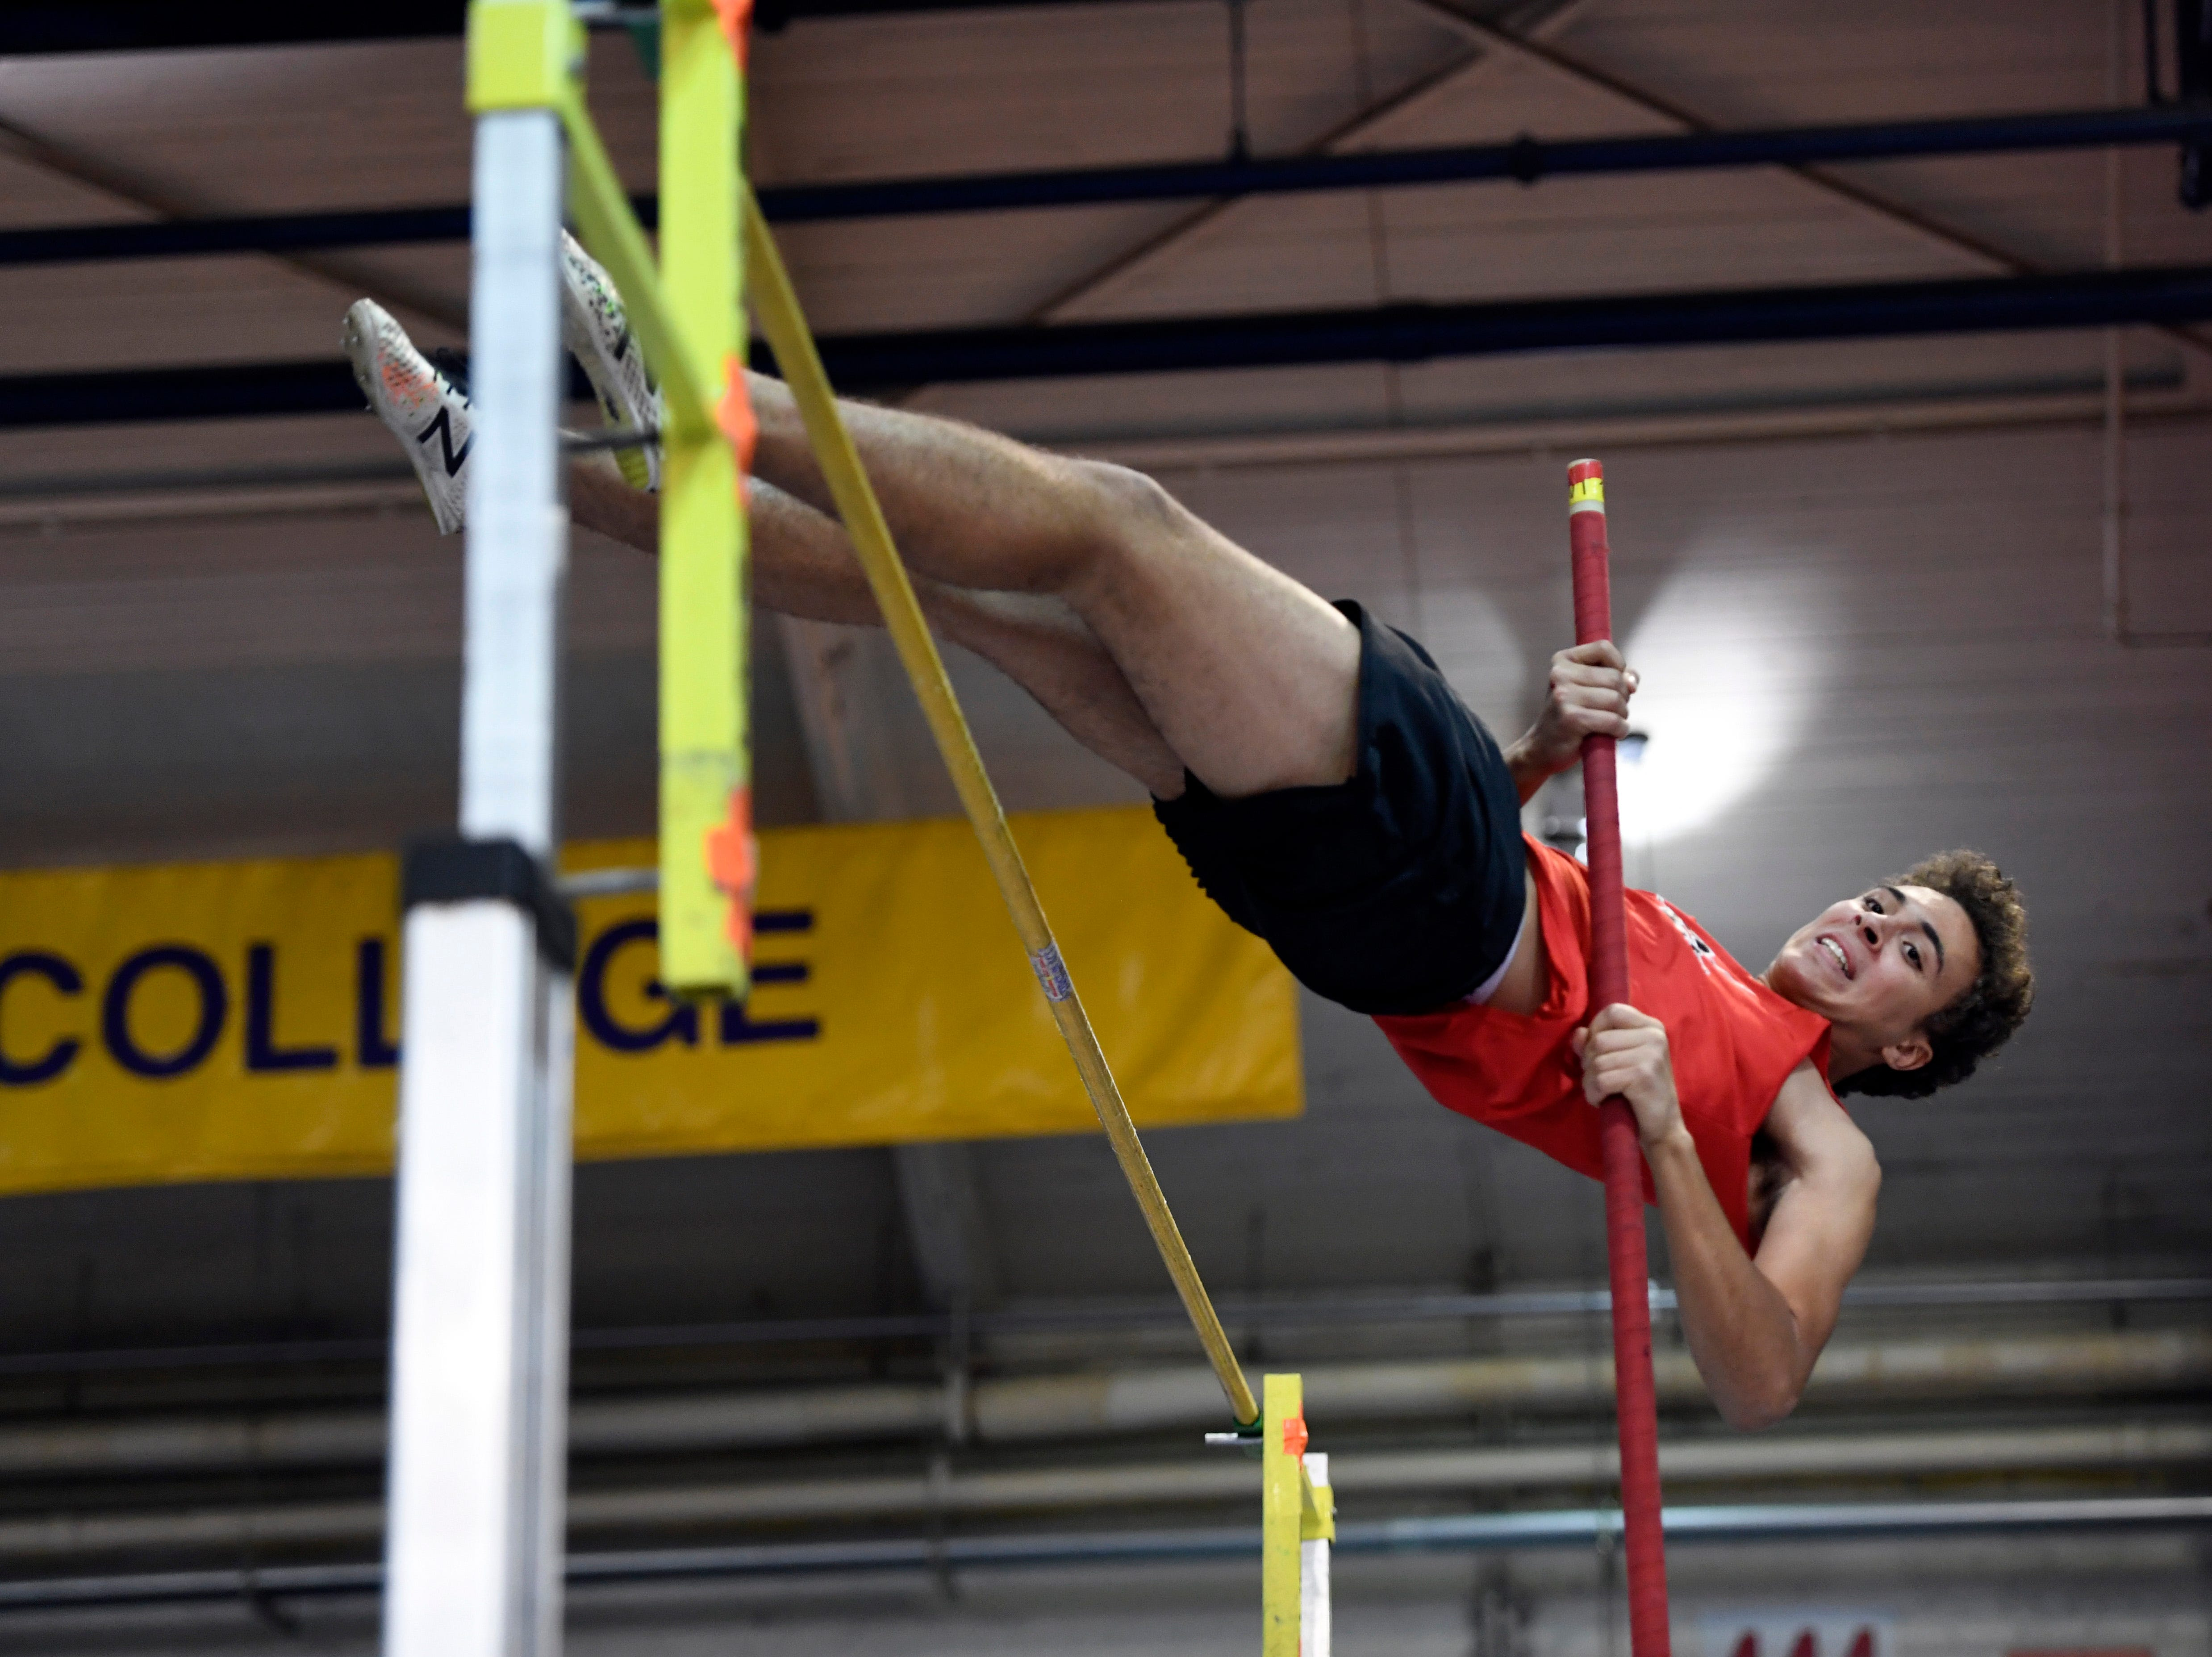 Cameron Storz of Emerson clears 11-feet-6-inches, coming in second in pole vault, during the NJIC track meet at the Armory Track on Monday, Jan. 7, 2019, in New York.